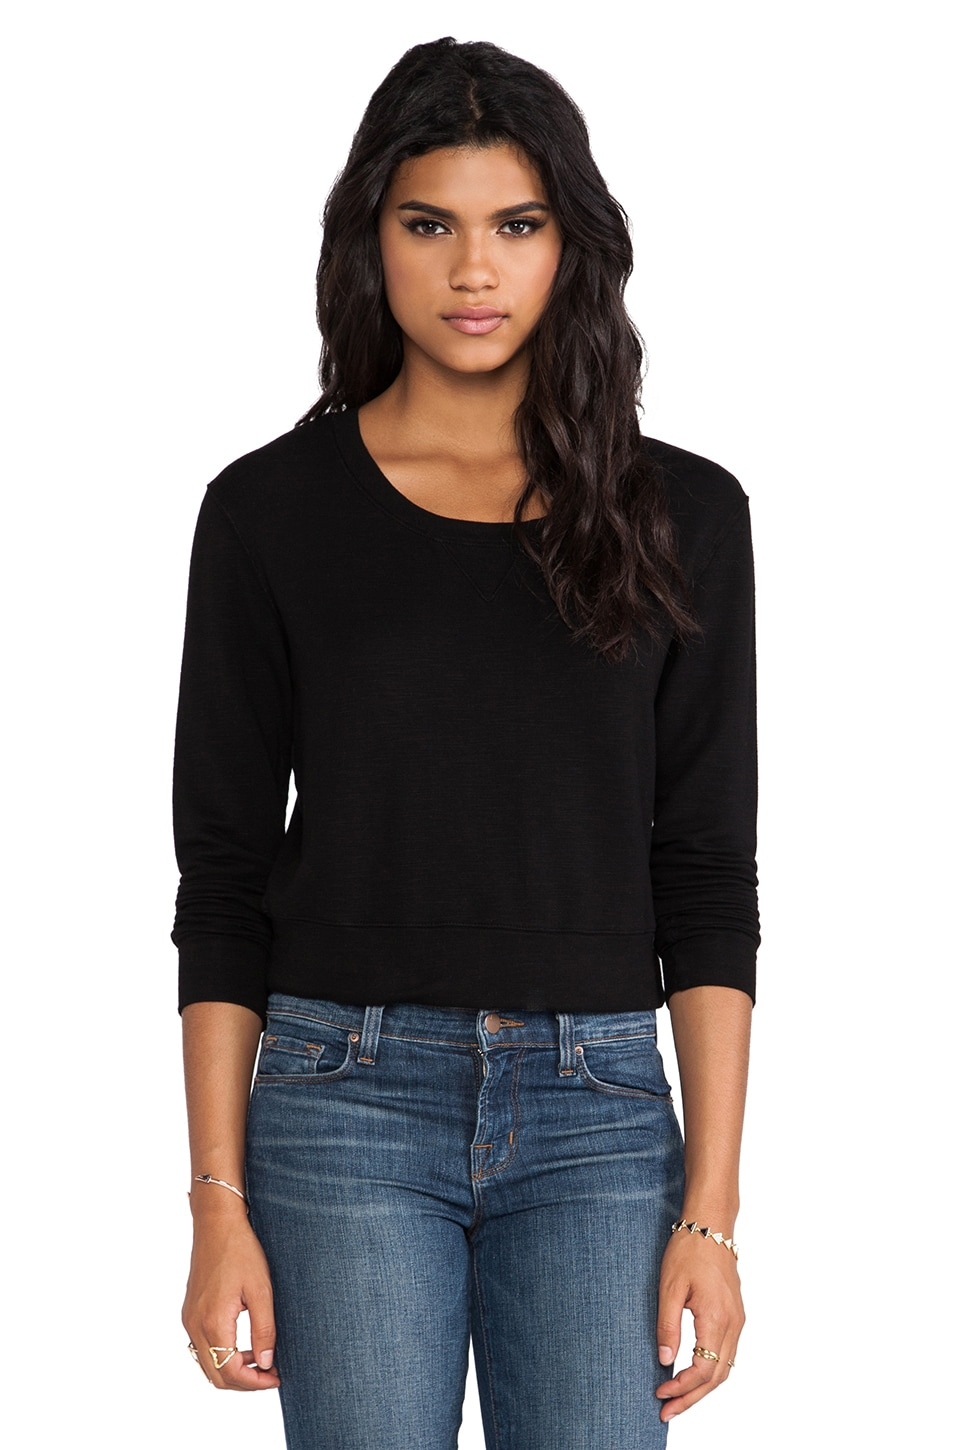 MONROW Ash French Terry Cropped Vintage Sweatshirt in Black